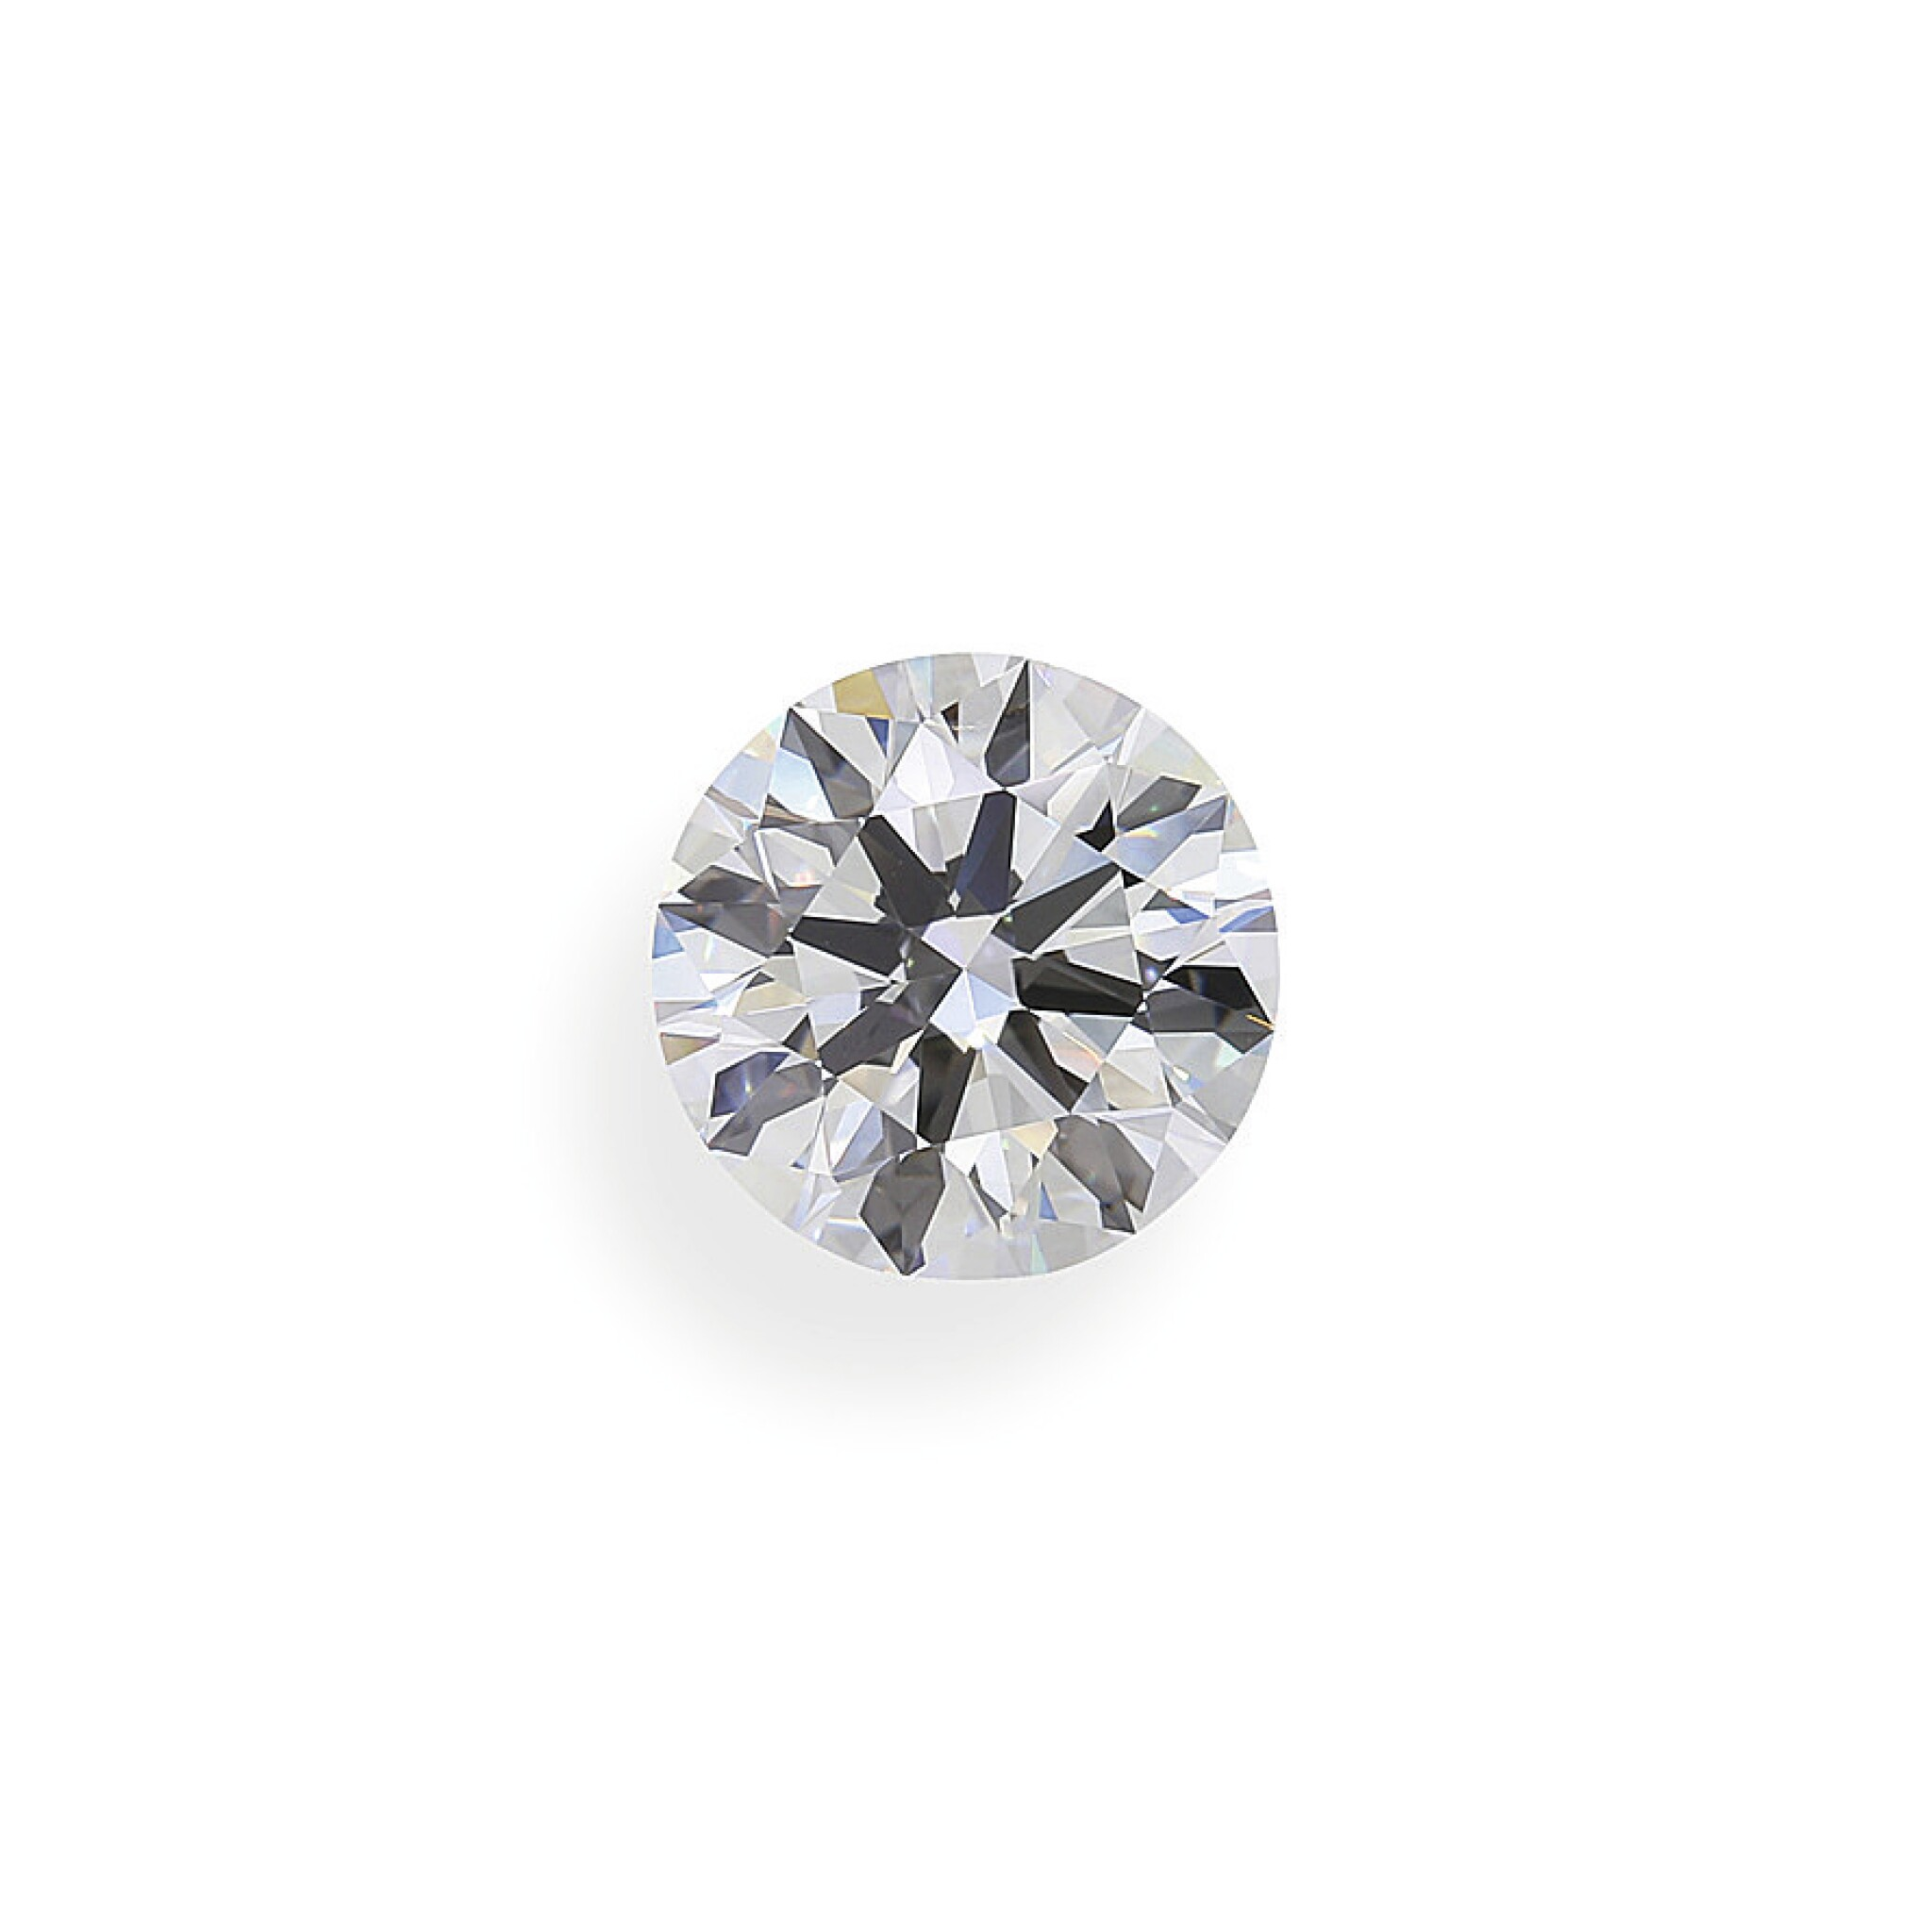 View full screen - View 1 of Lot 5. A 2.56 Carat Round Diamond, D Color, Internally Flawless.